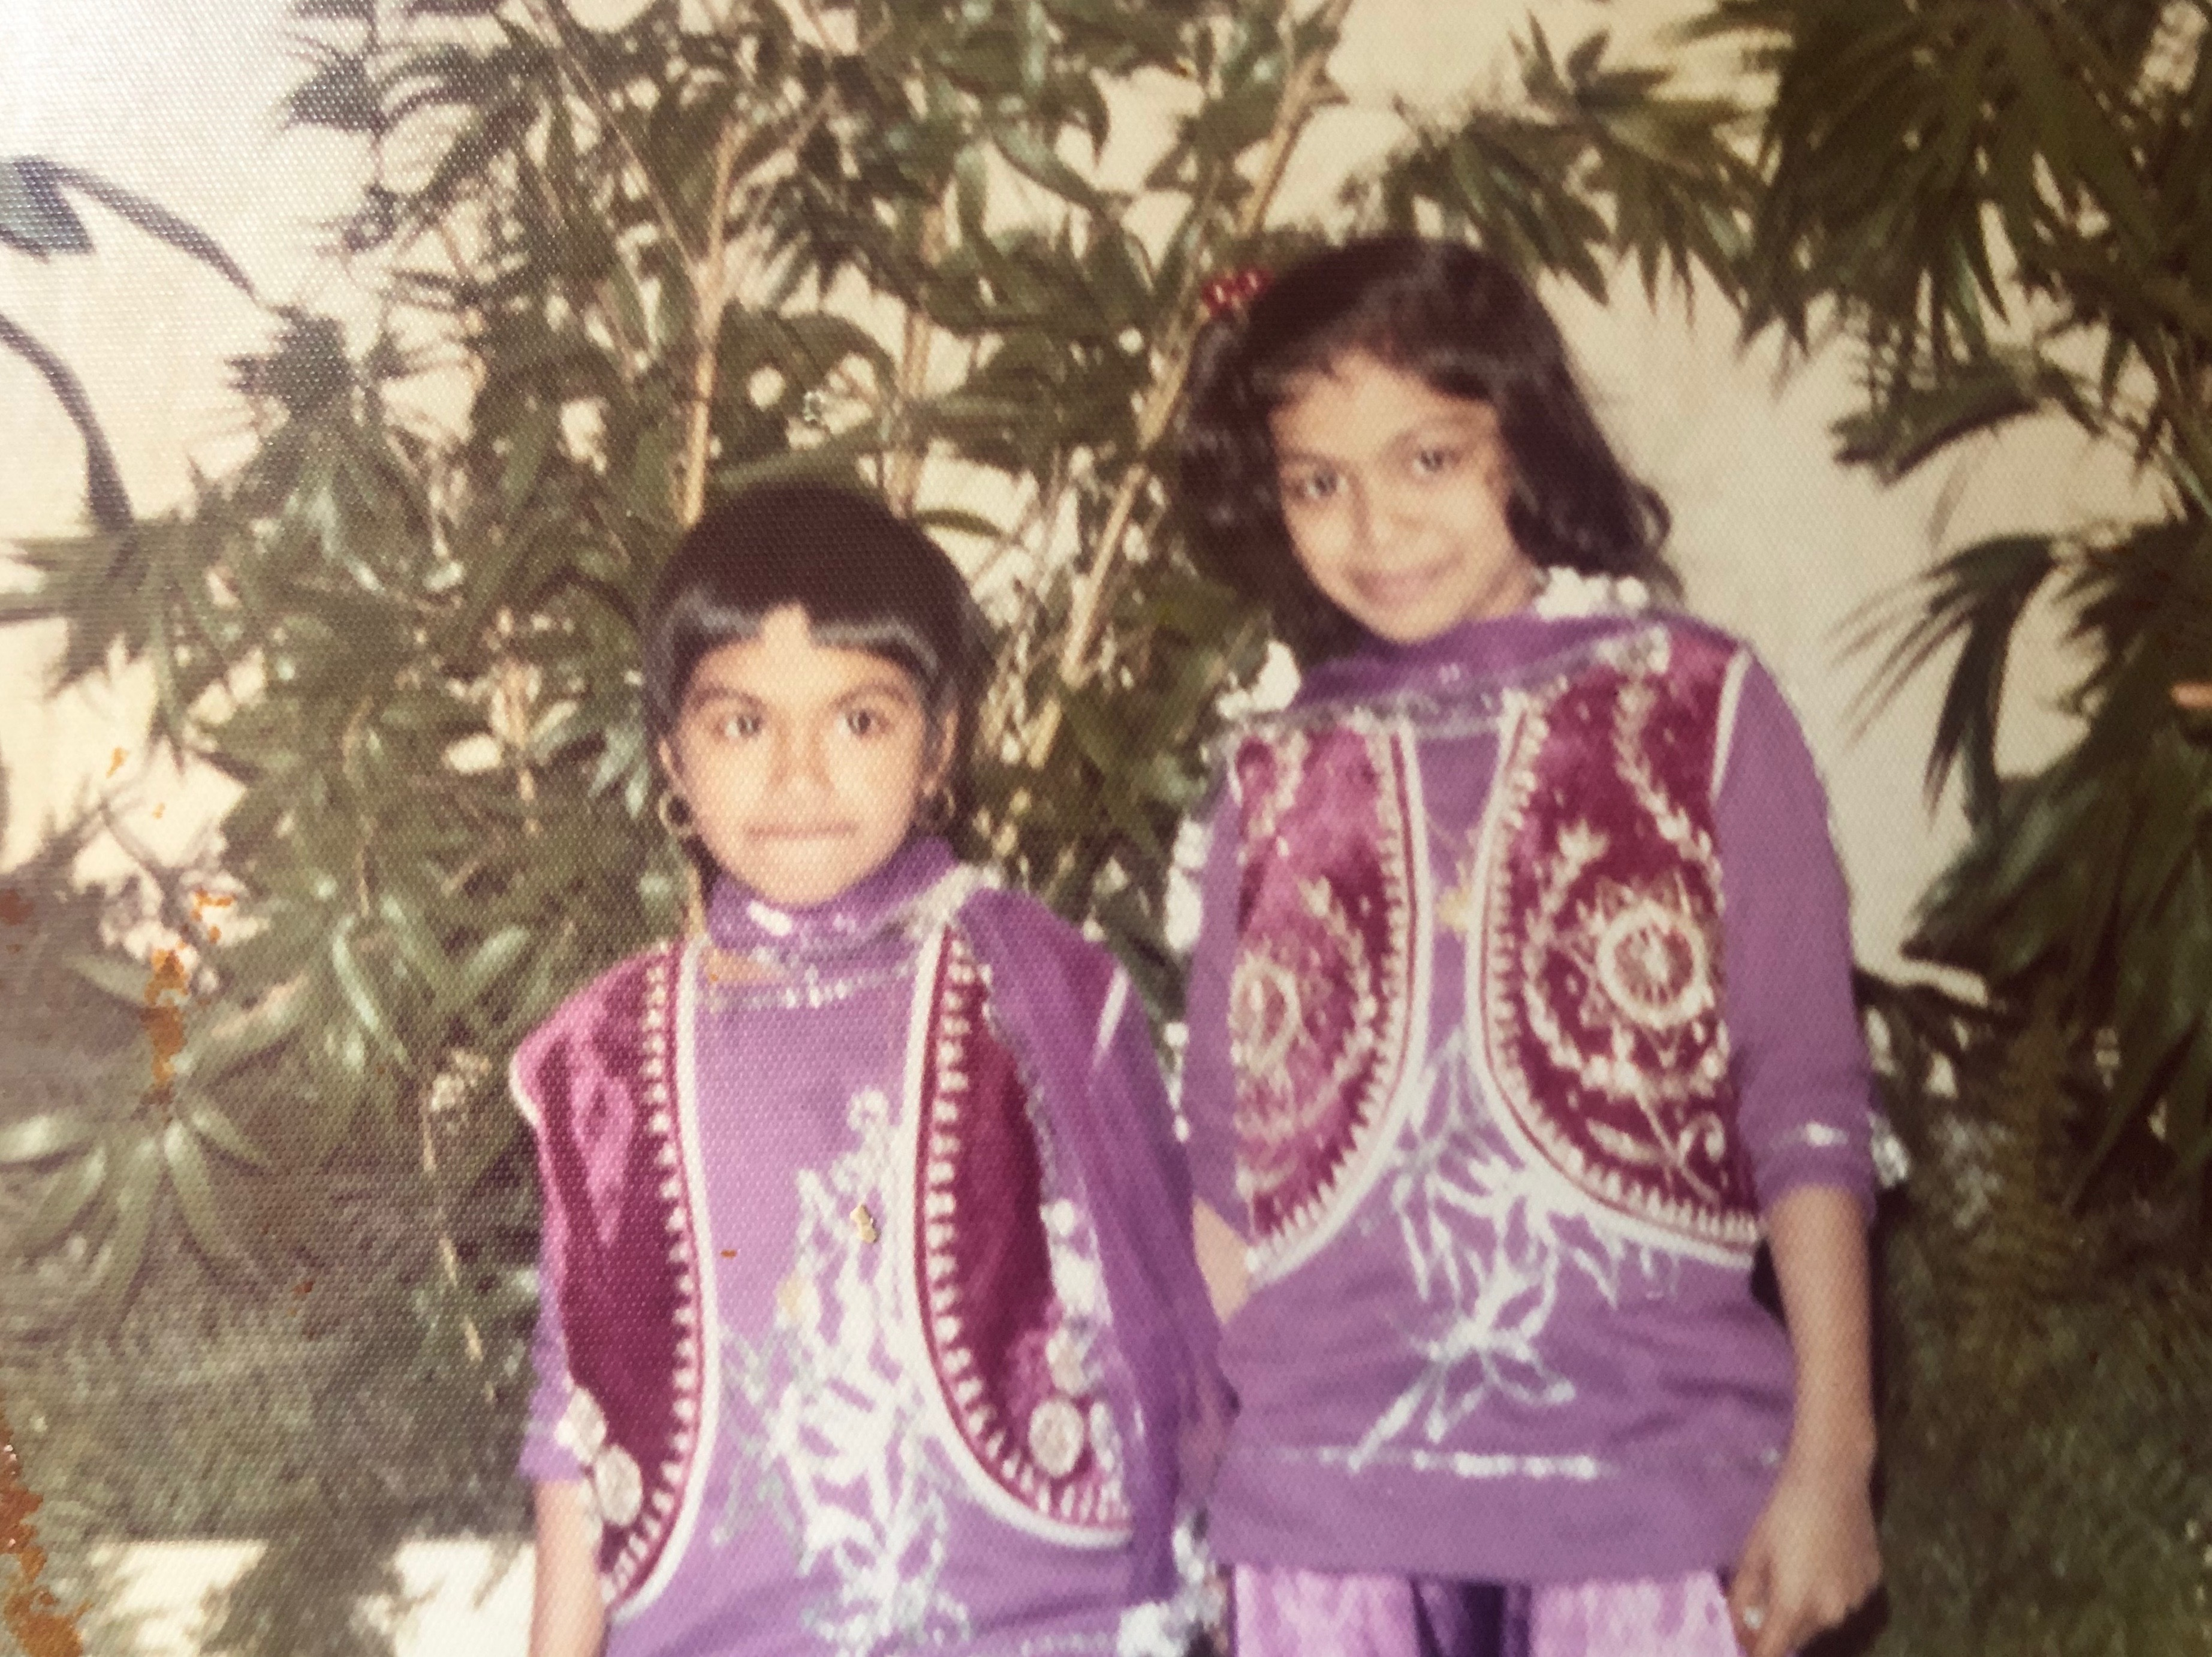 The author (after trying cut her own bangs) and her older sister, Samina Hussain, at an Eid celebration at McCormick Place in the 1970s.